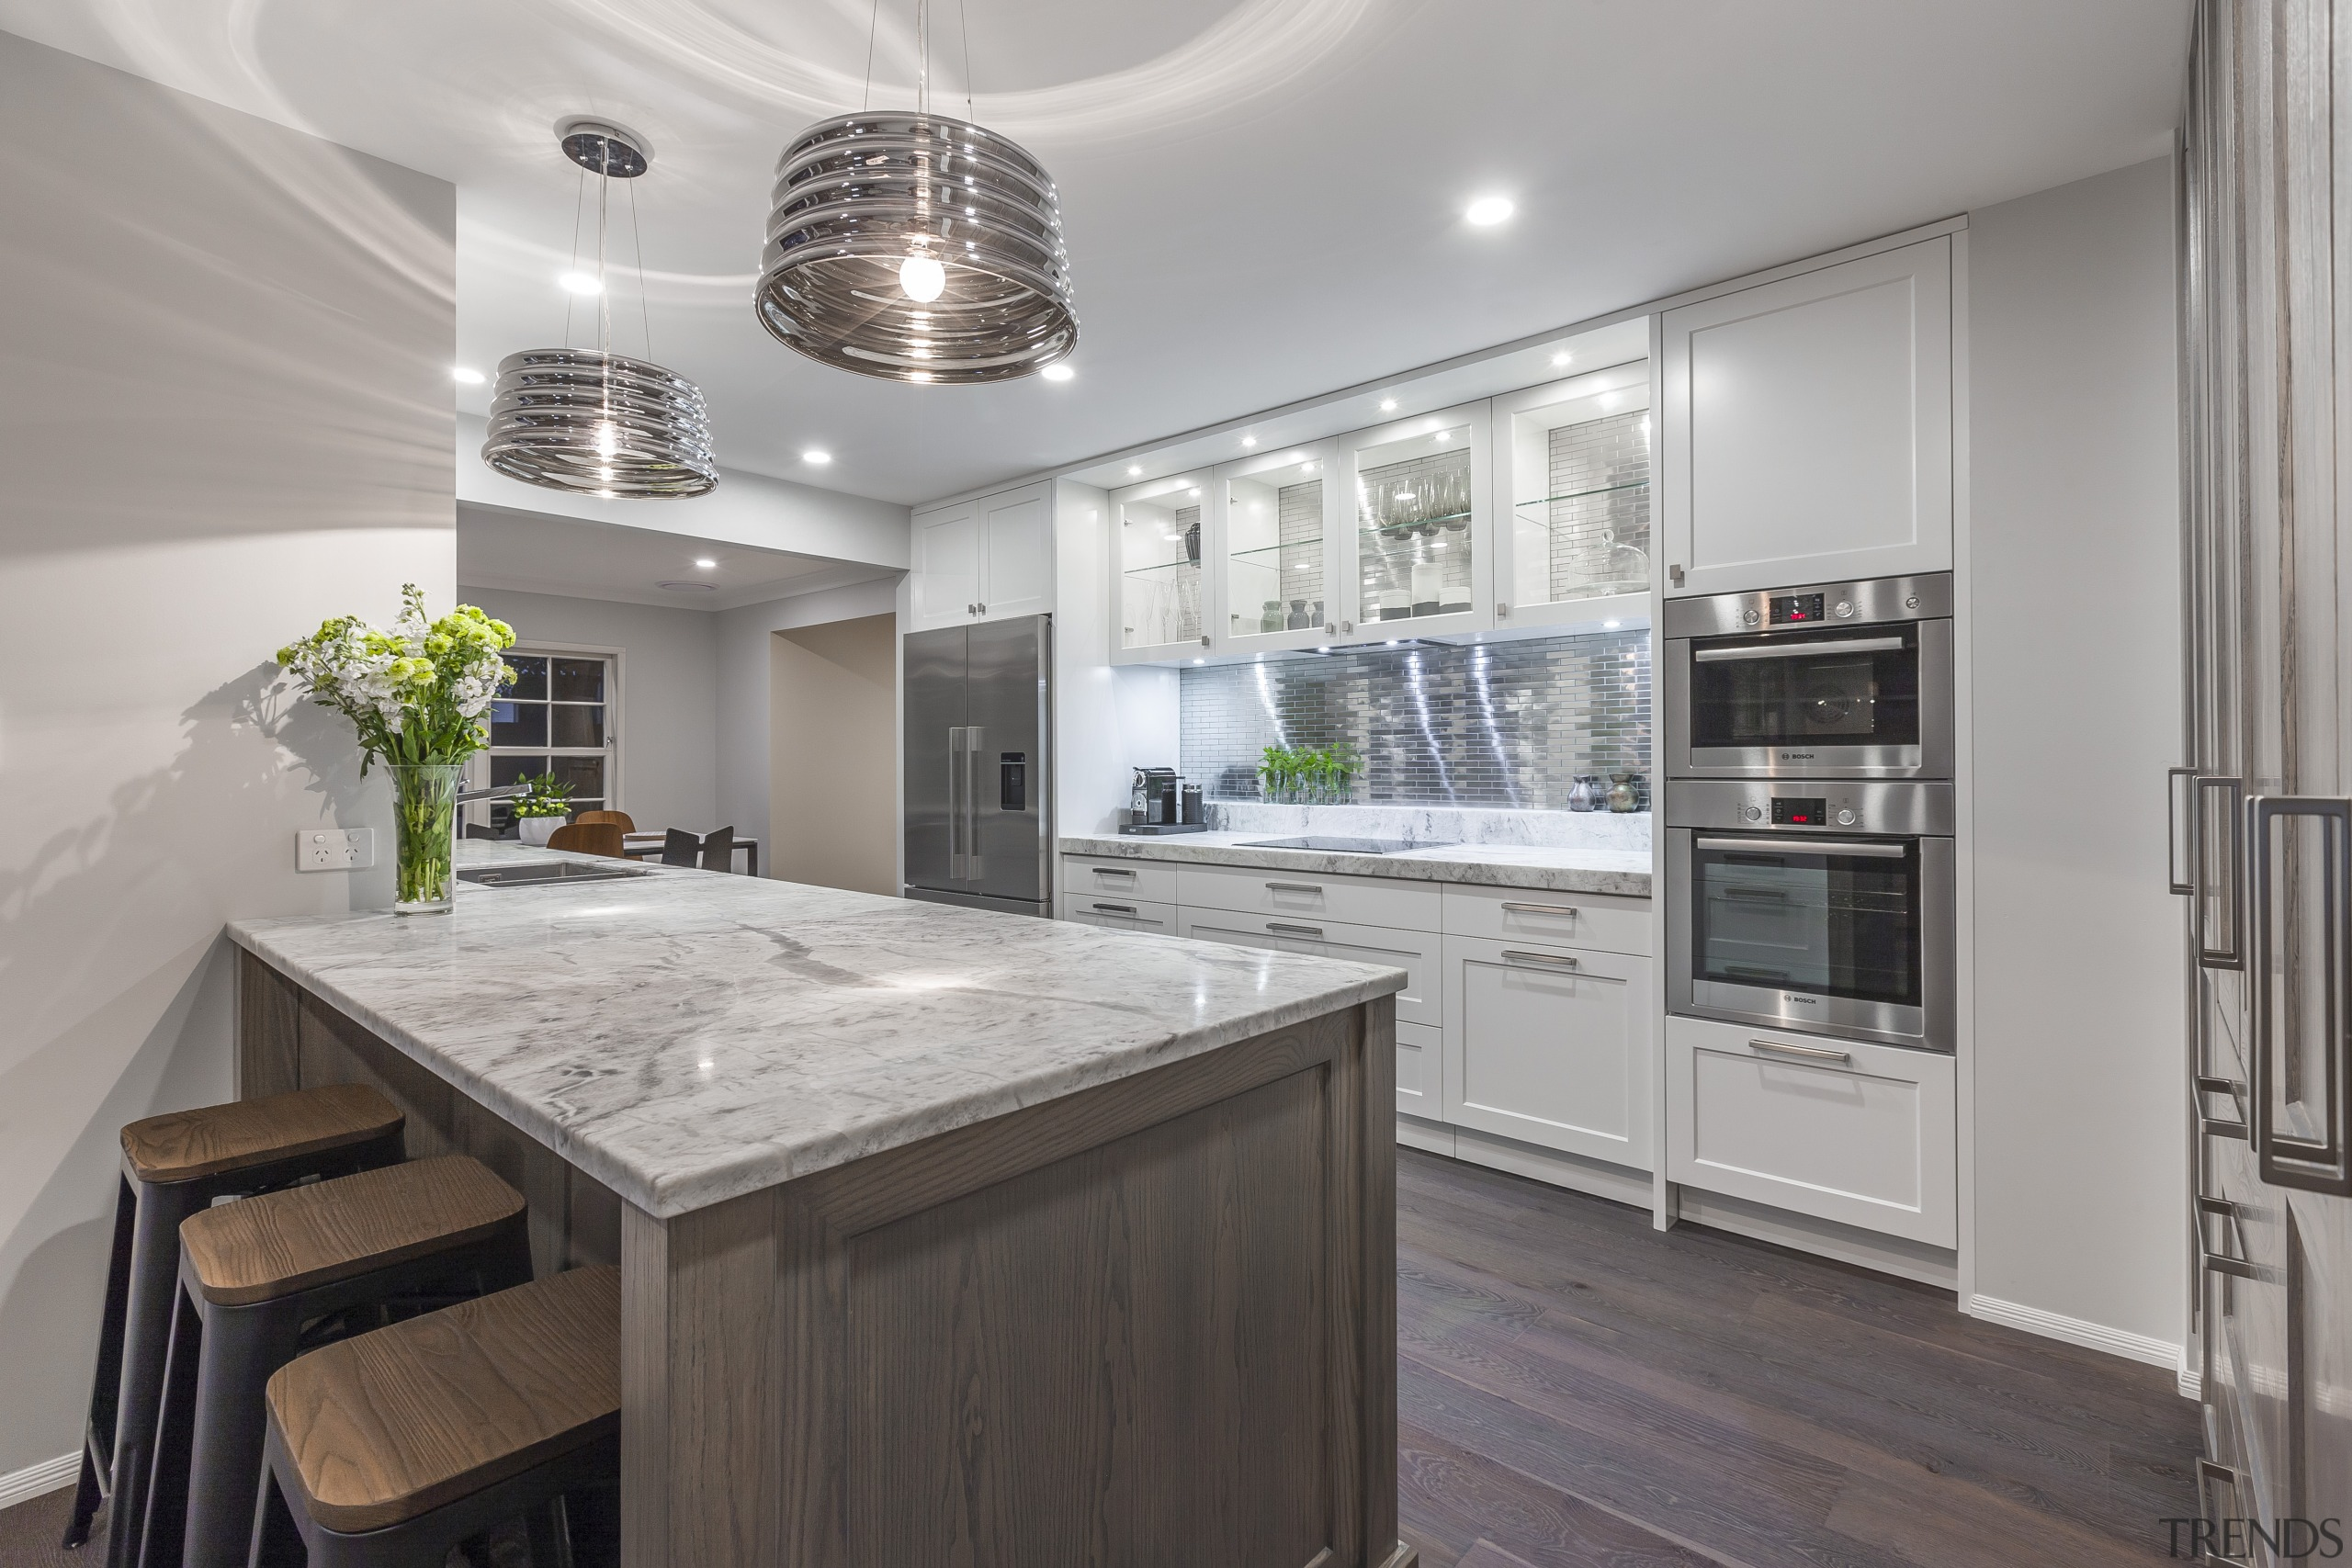 Sunnyhills II - cabinetry | countertop | cuisine cabinetry, countertop, cuisine classique, interior design, kitchen, real estate, gray